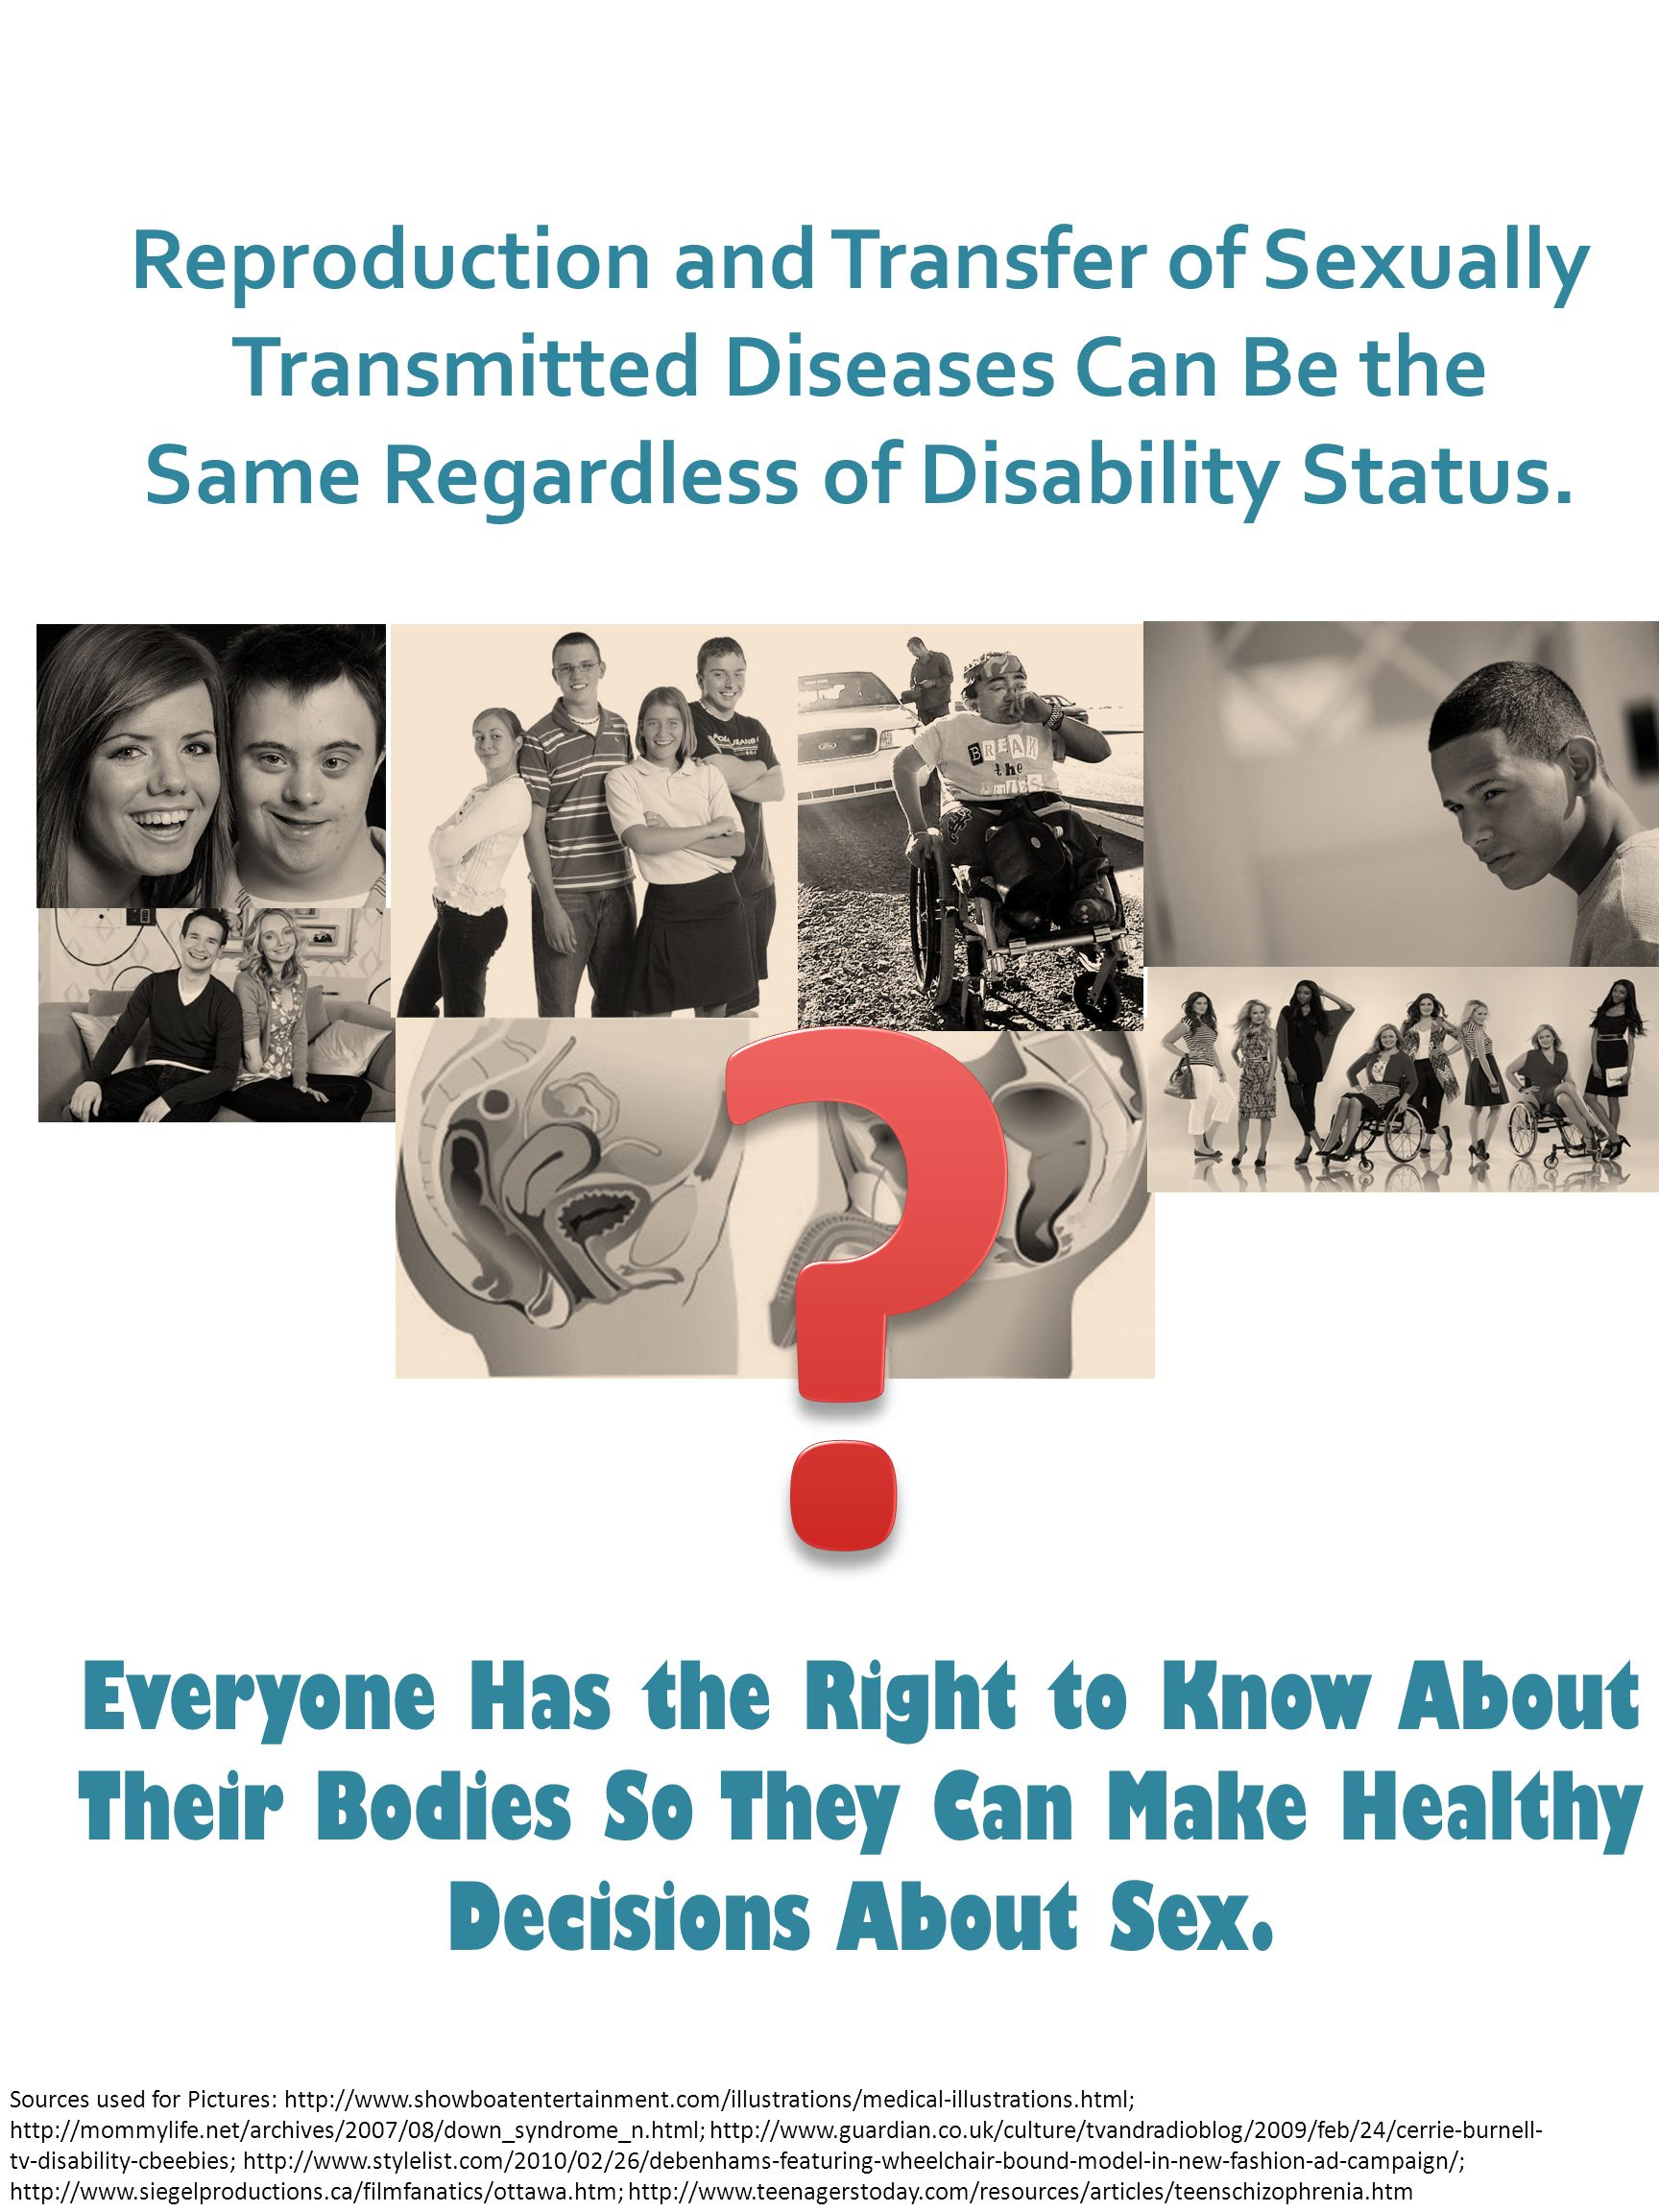 Reproduction and Transfer of Sexually Transmitted Diseases Can Be the Same Regardless of Disability Status.